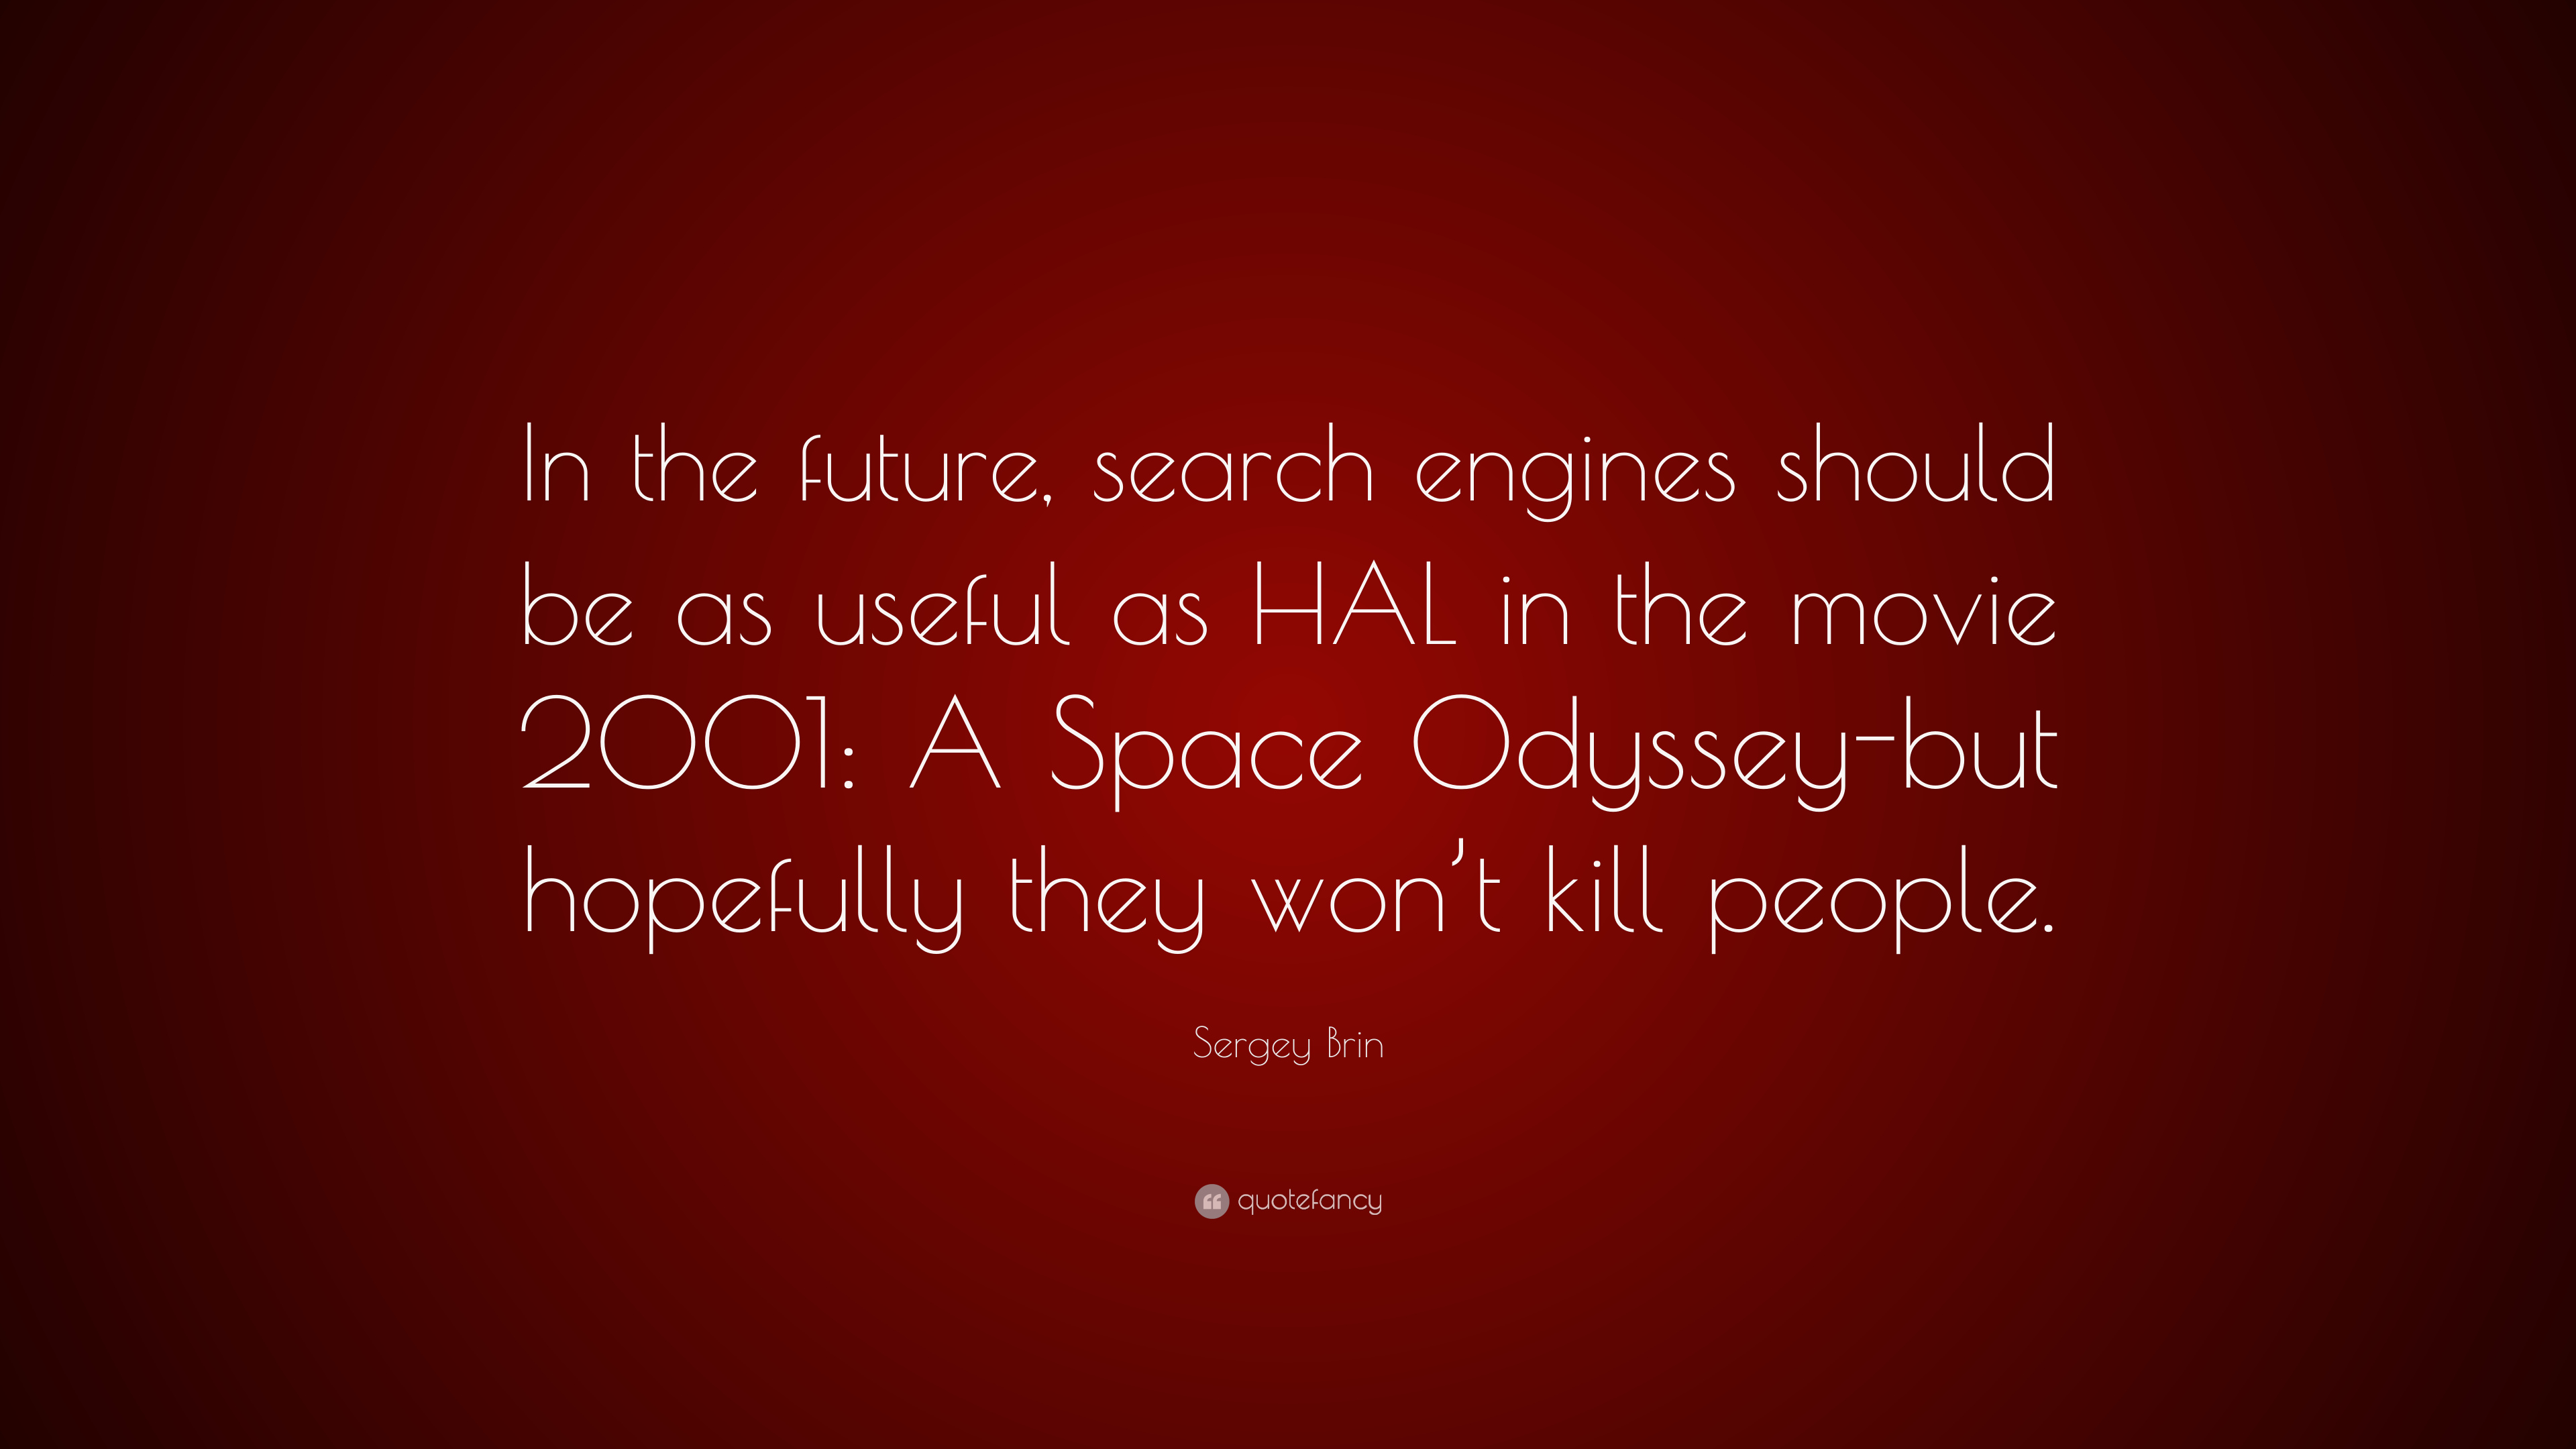 Sergey brin quote in the future search engines should be as useful as